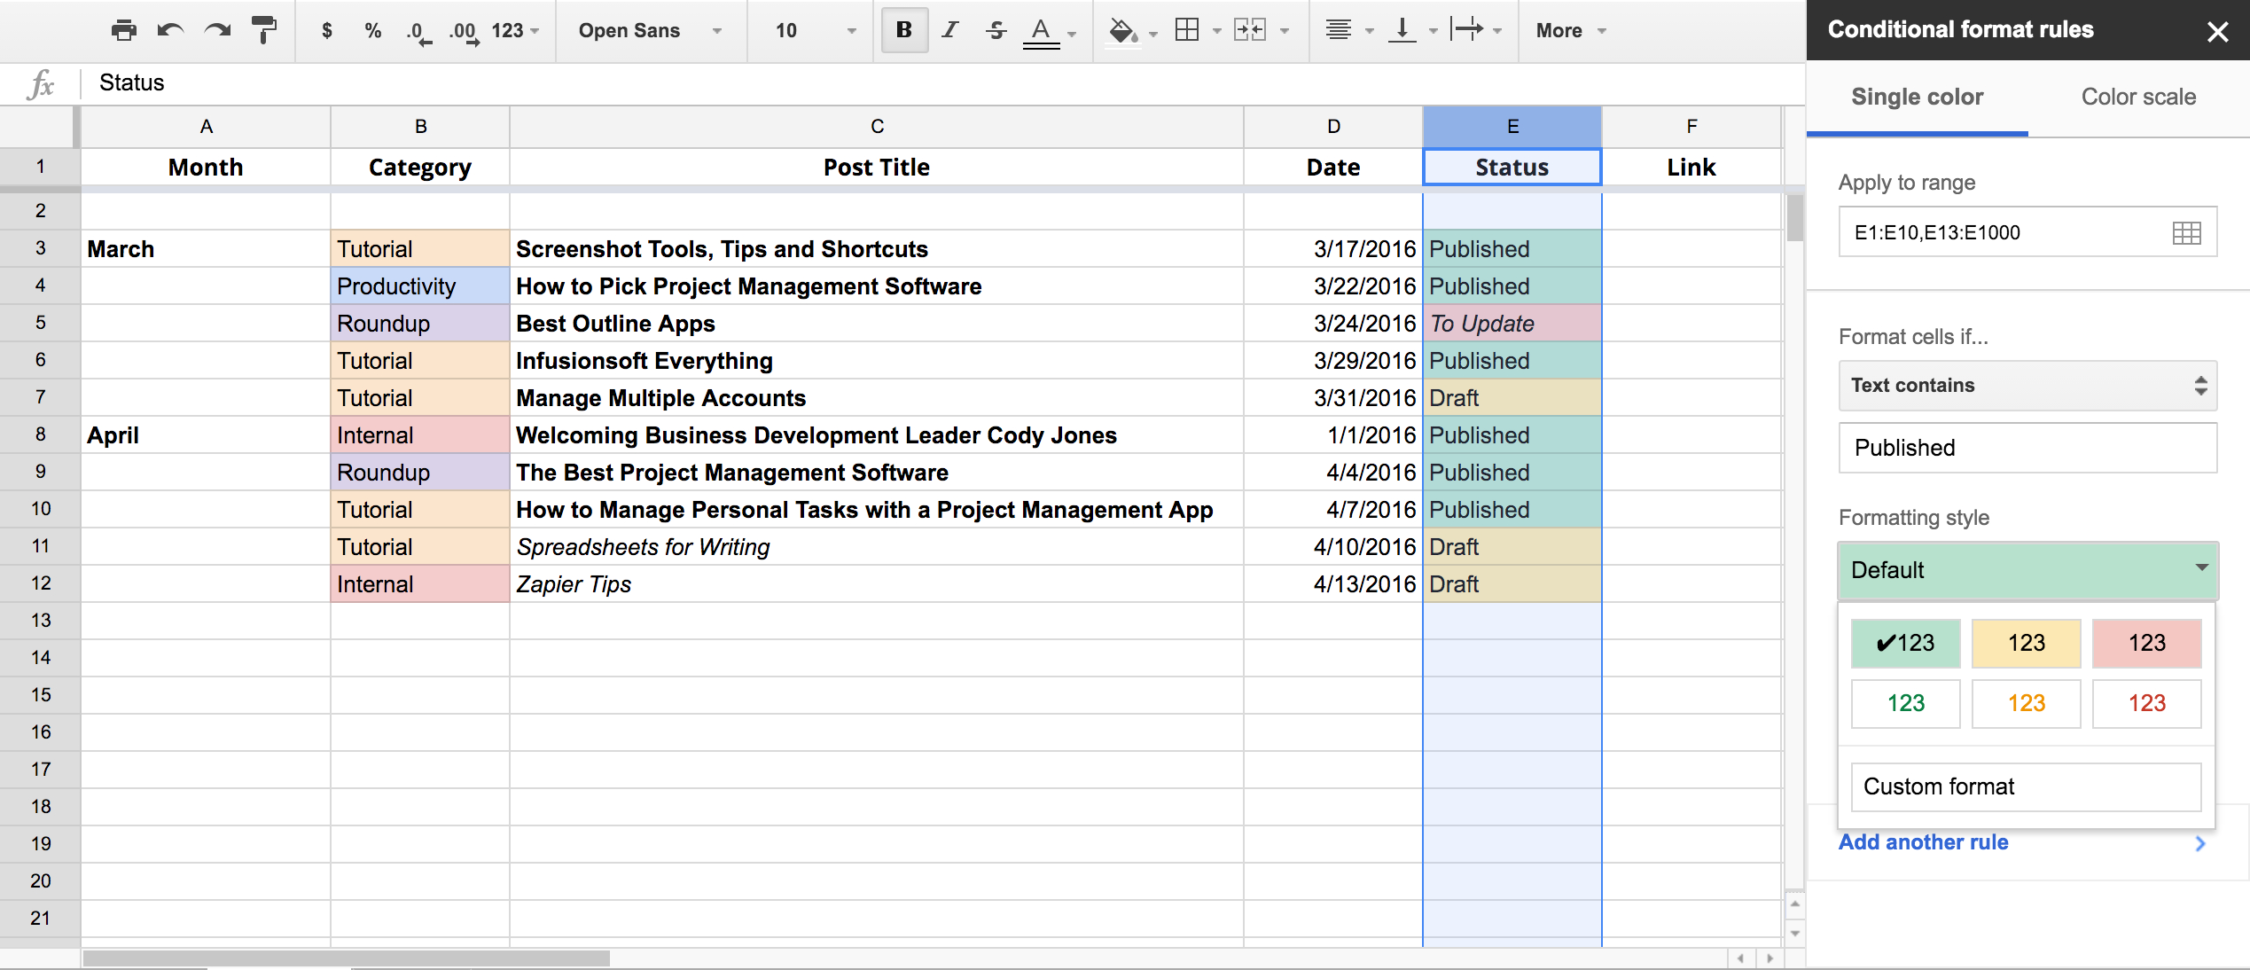 jobs that use spreadsheets list of jobs that use spreadsheets jobs that use excel spreadsheets 3 jobs that use spreadsheets  Jobs That Use Spreadsheets Inside Write Faster With Spreadsheets: 10 Shortcuts For Composing Outlines Jobs That Use Spreadsheets Google Spreadshee